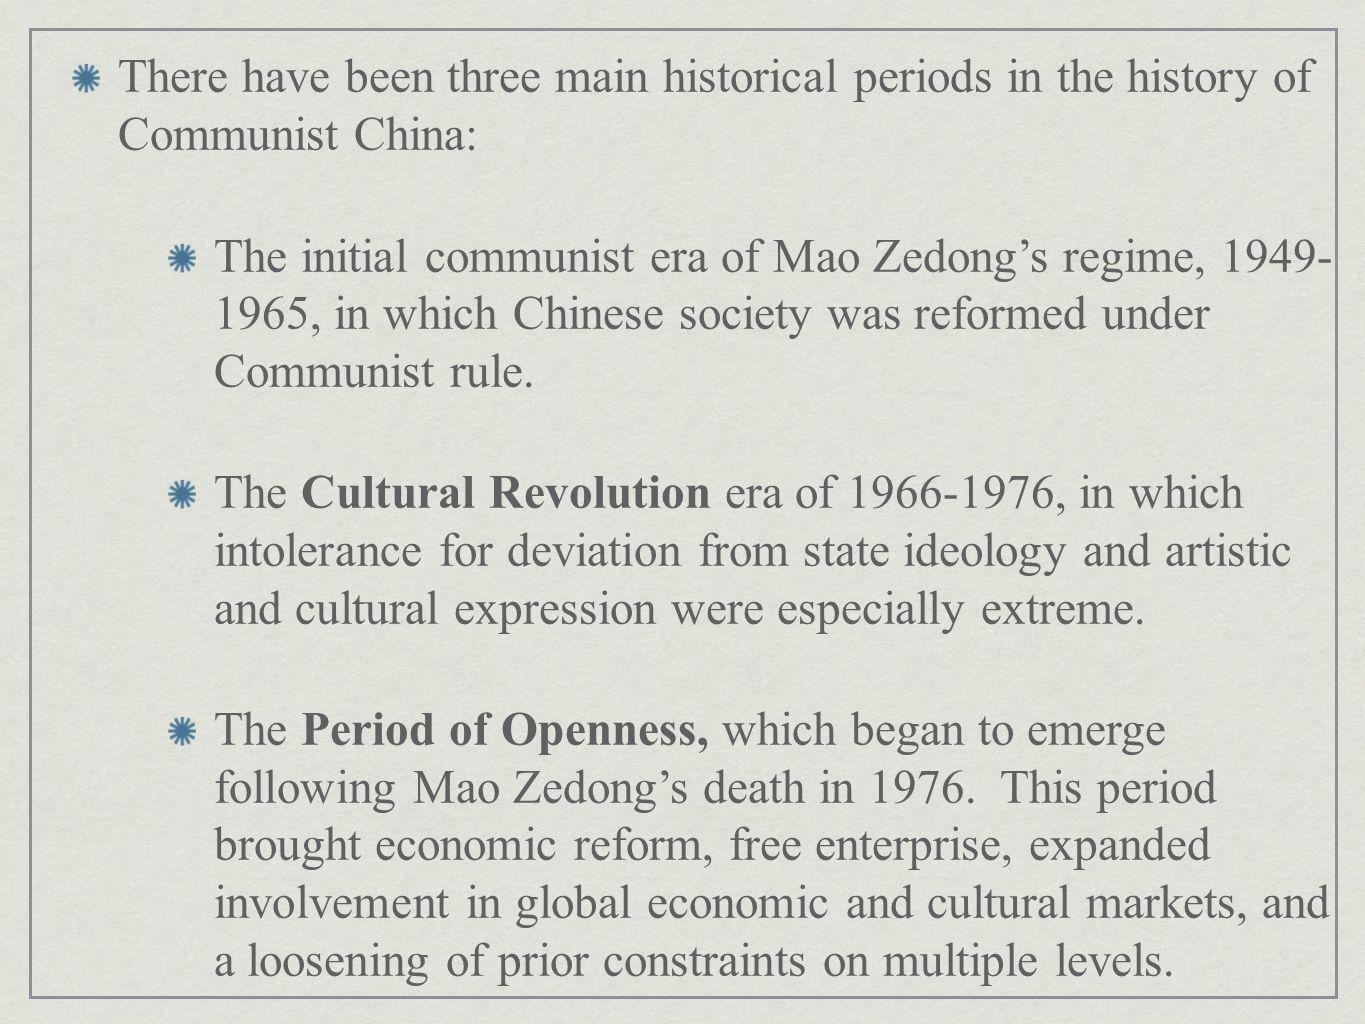 The Cultural Revolution Era The Cultural Revolution (1966-1976) had the purported aim of ridding Chinese culture of anything alien to the egalitarian spirit of [Chinese] socialism (Fletcher 2001:344).